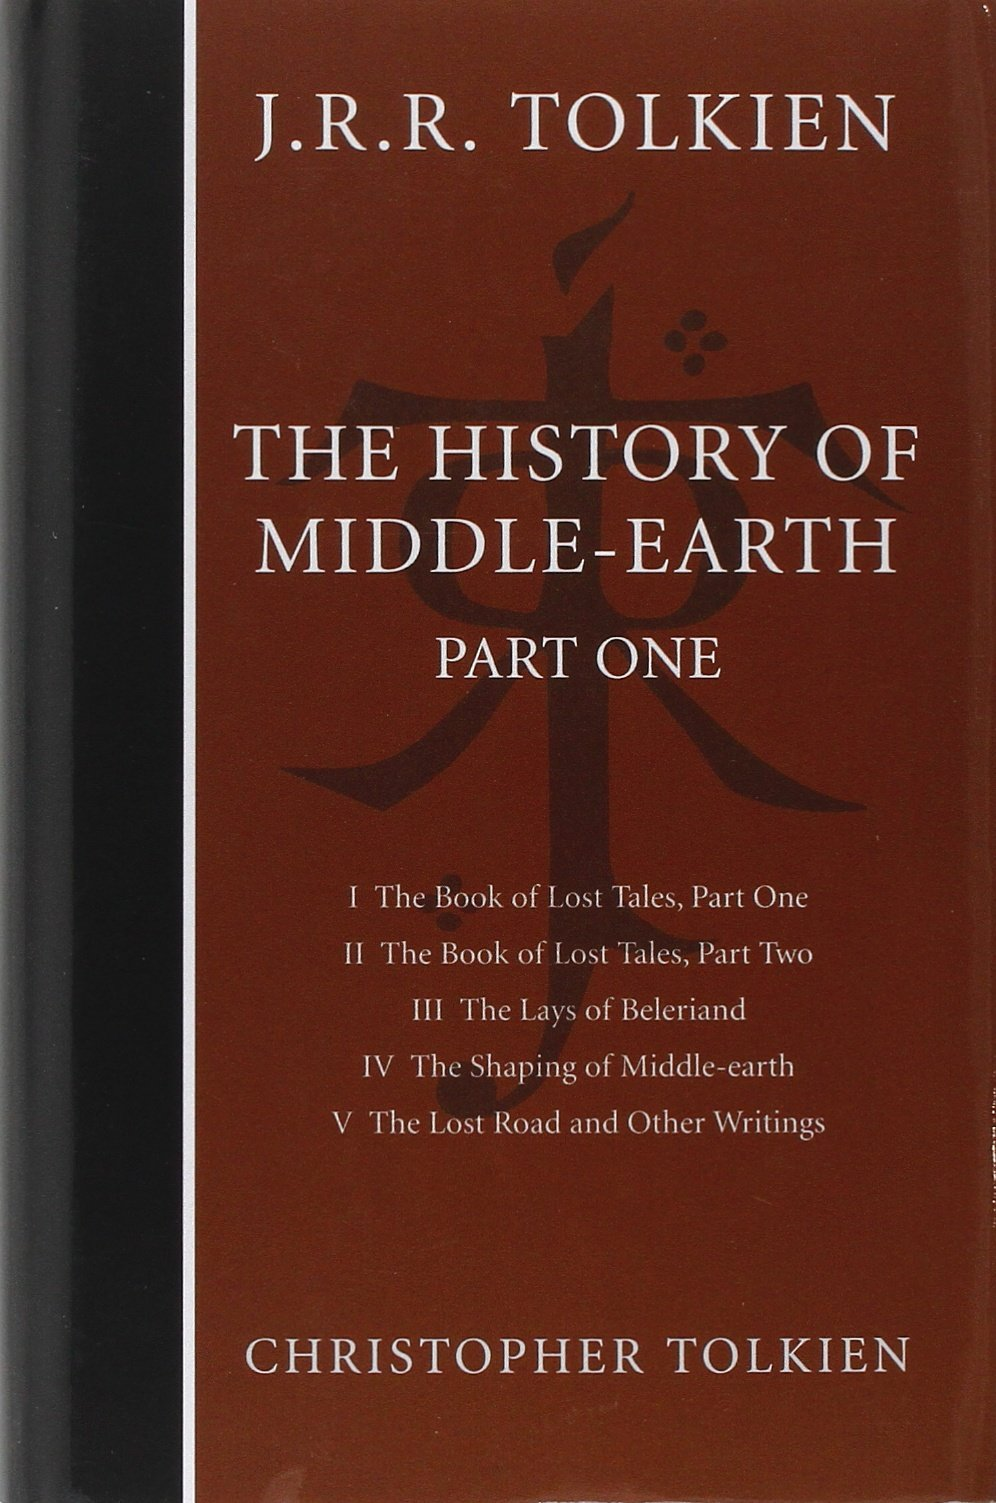 The History of Middle-earth: Part 1 (Pt.1): Christopher Tolkien, J. R. R. Tolkien: 9780007149155: Amazon.com: Books